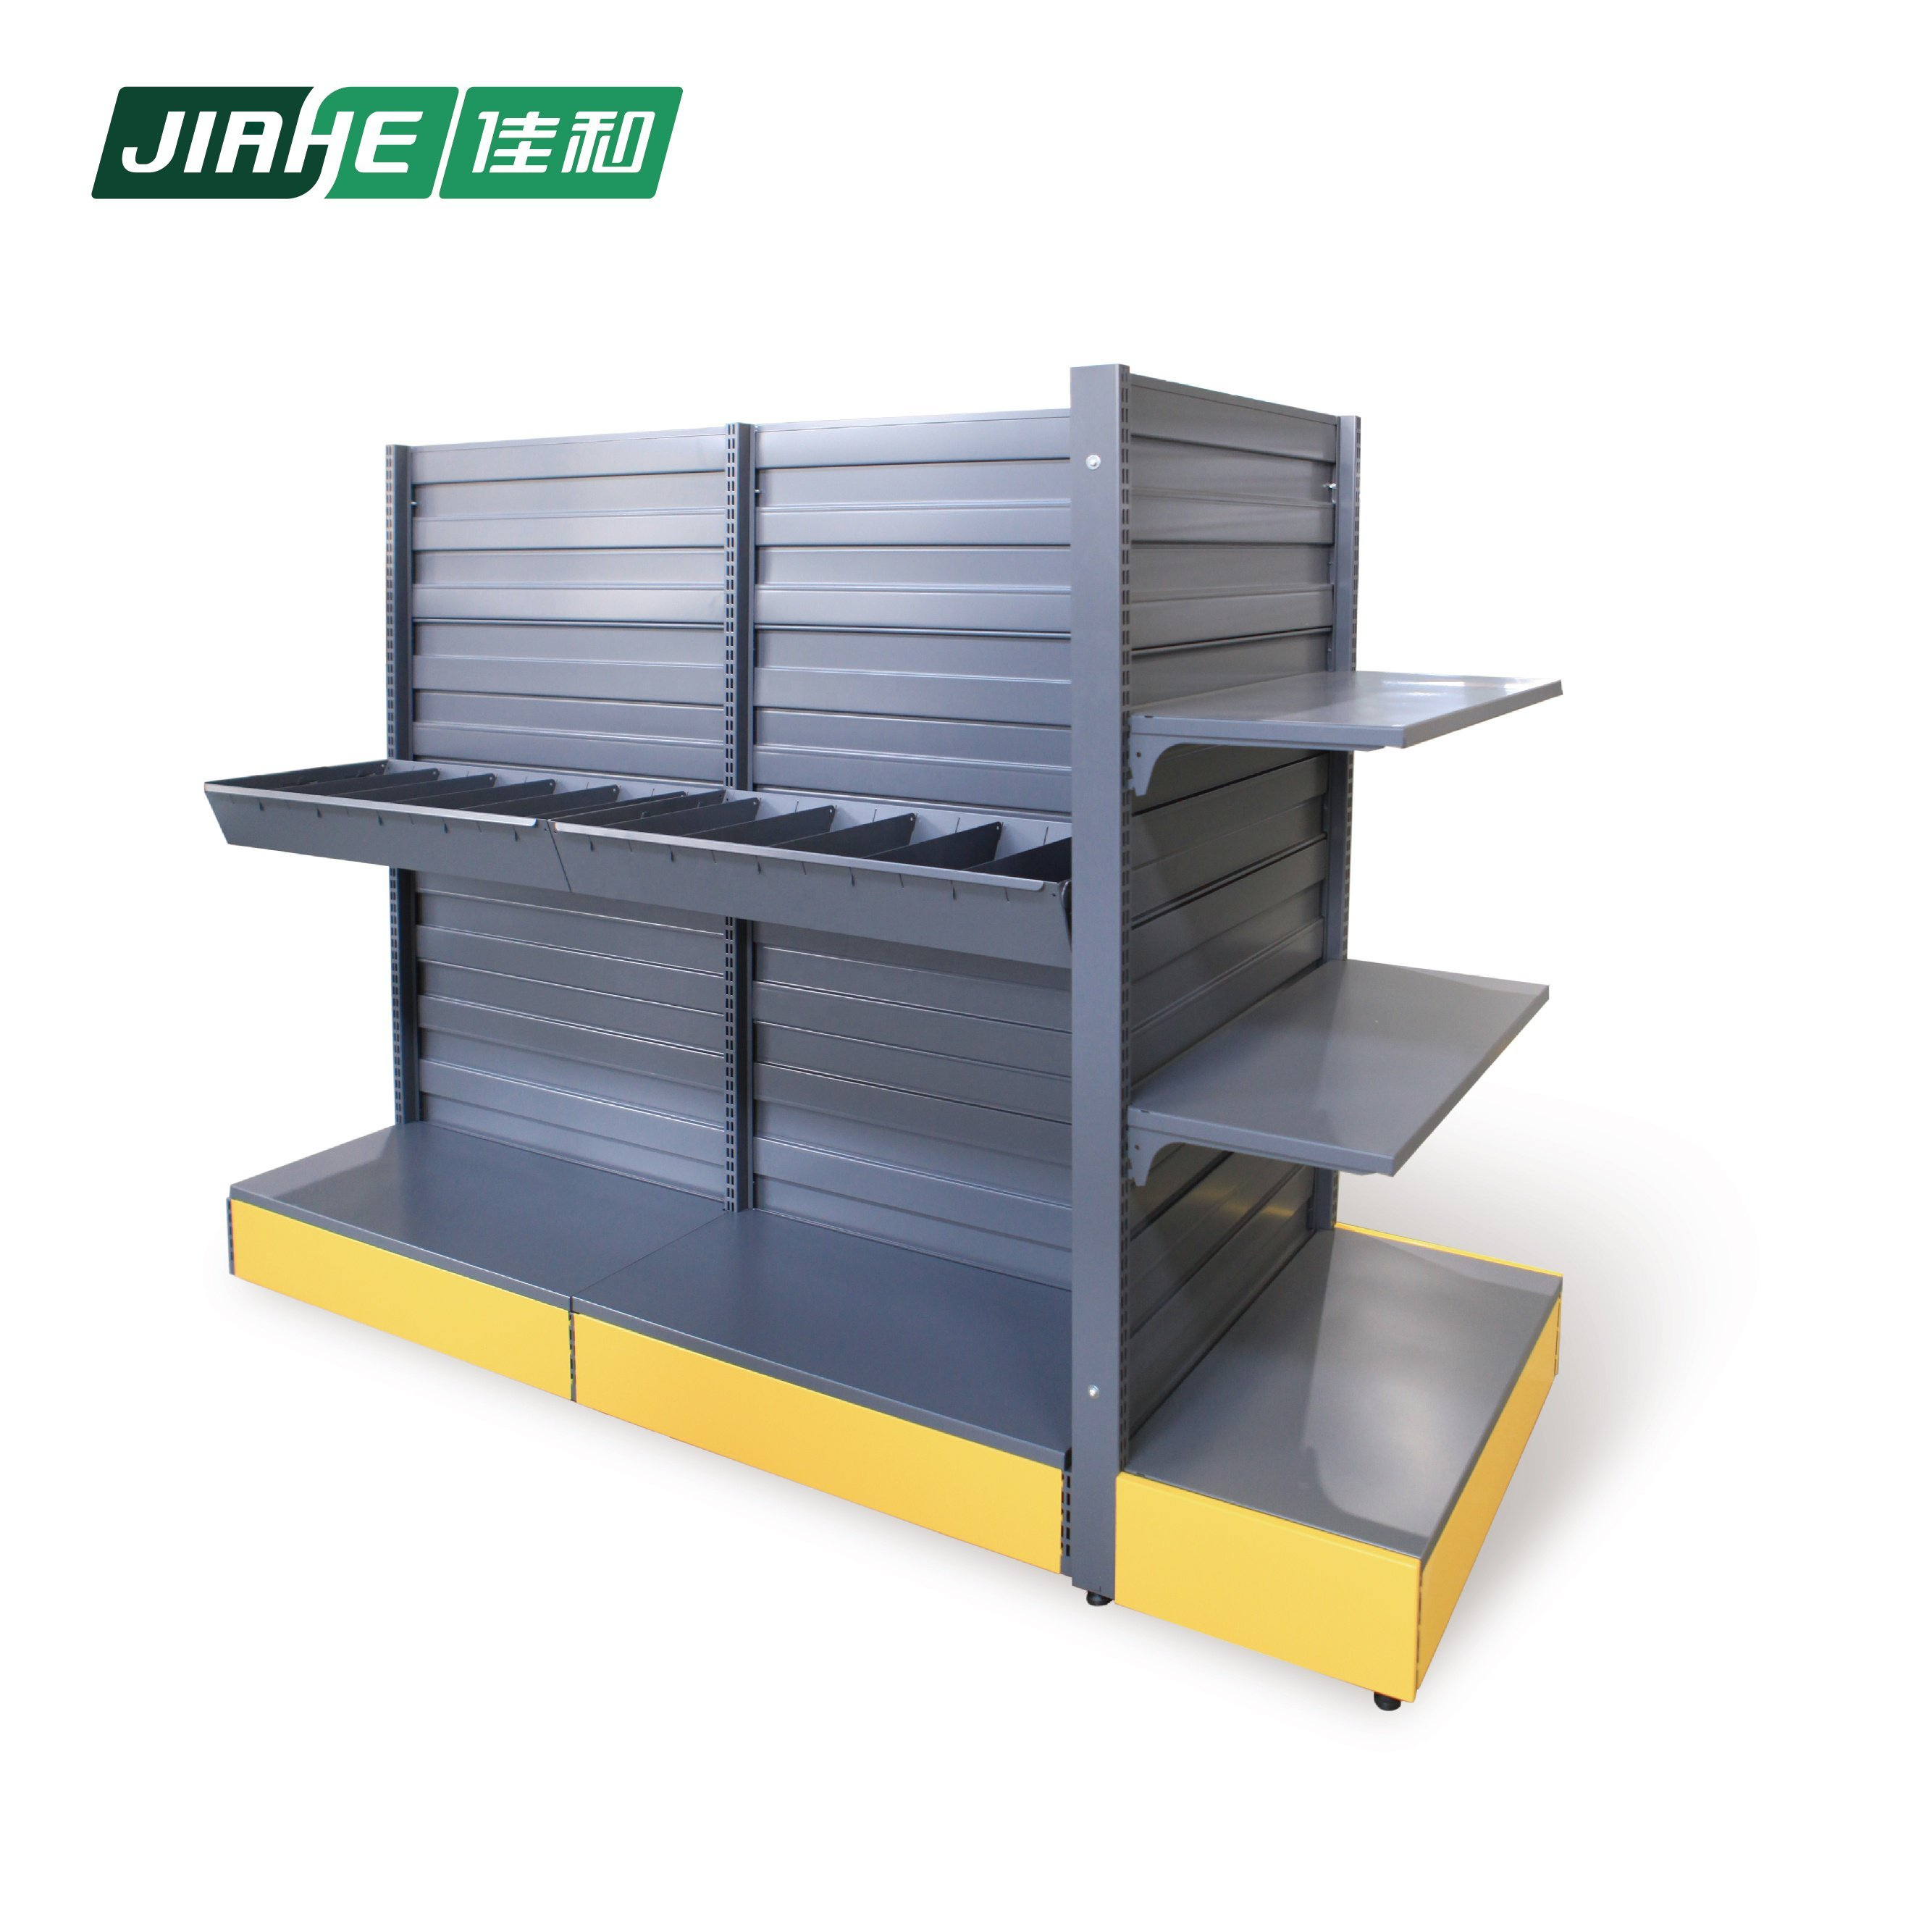 Screw display racks double sides with end cap storage shelf for supermarket